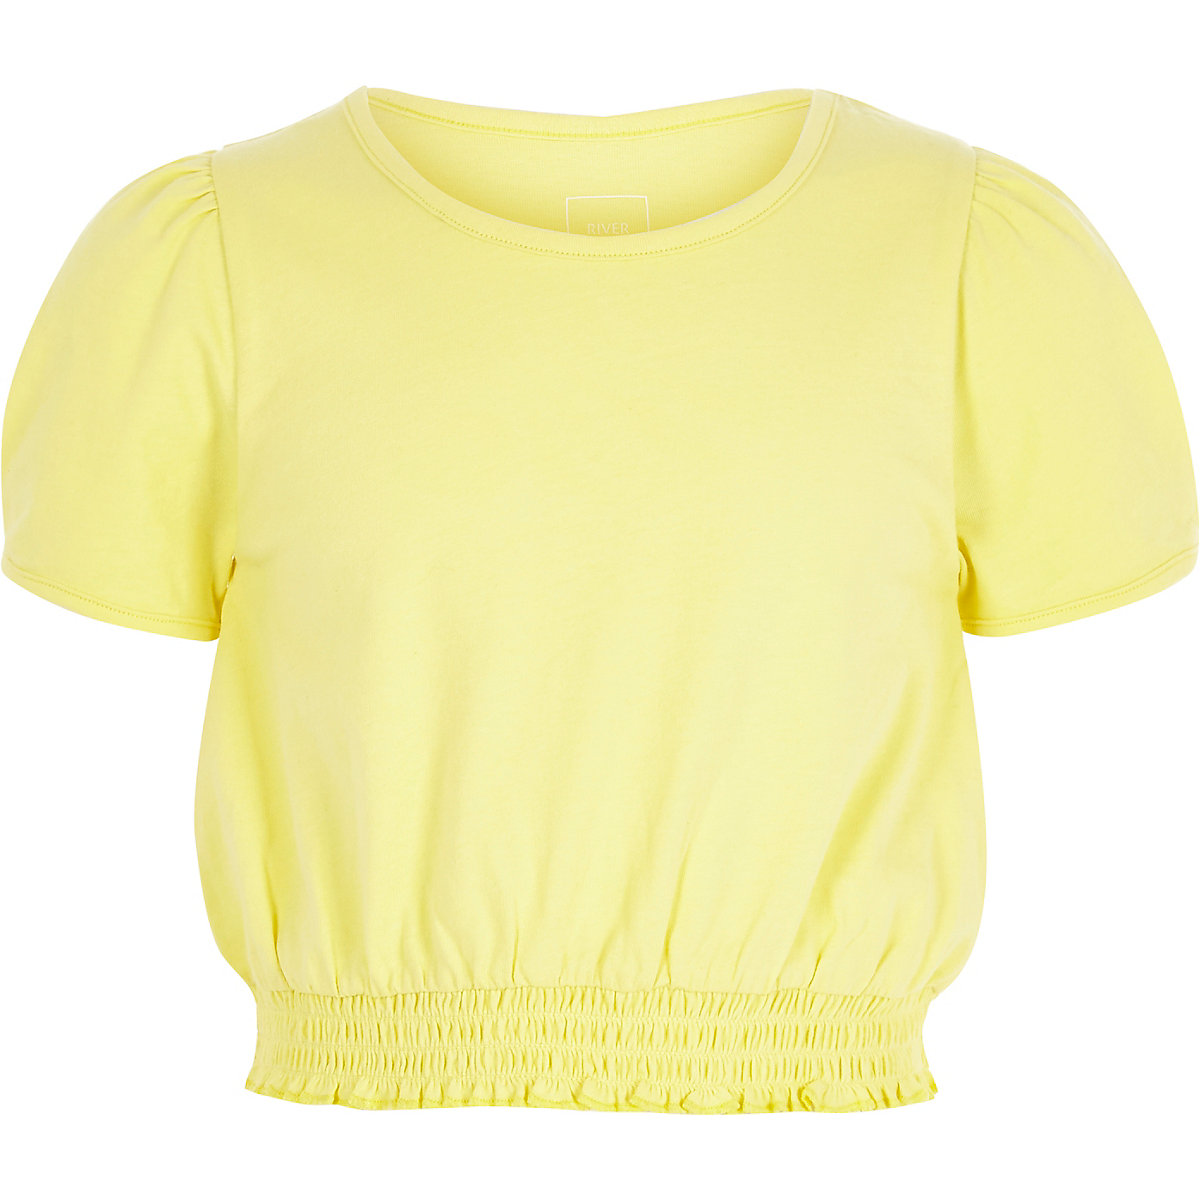 Girls yellow puff sleeve T-shirt